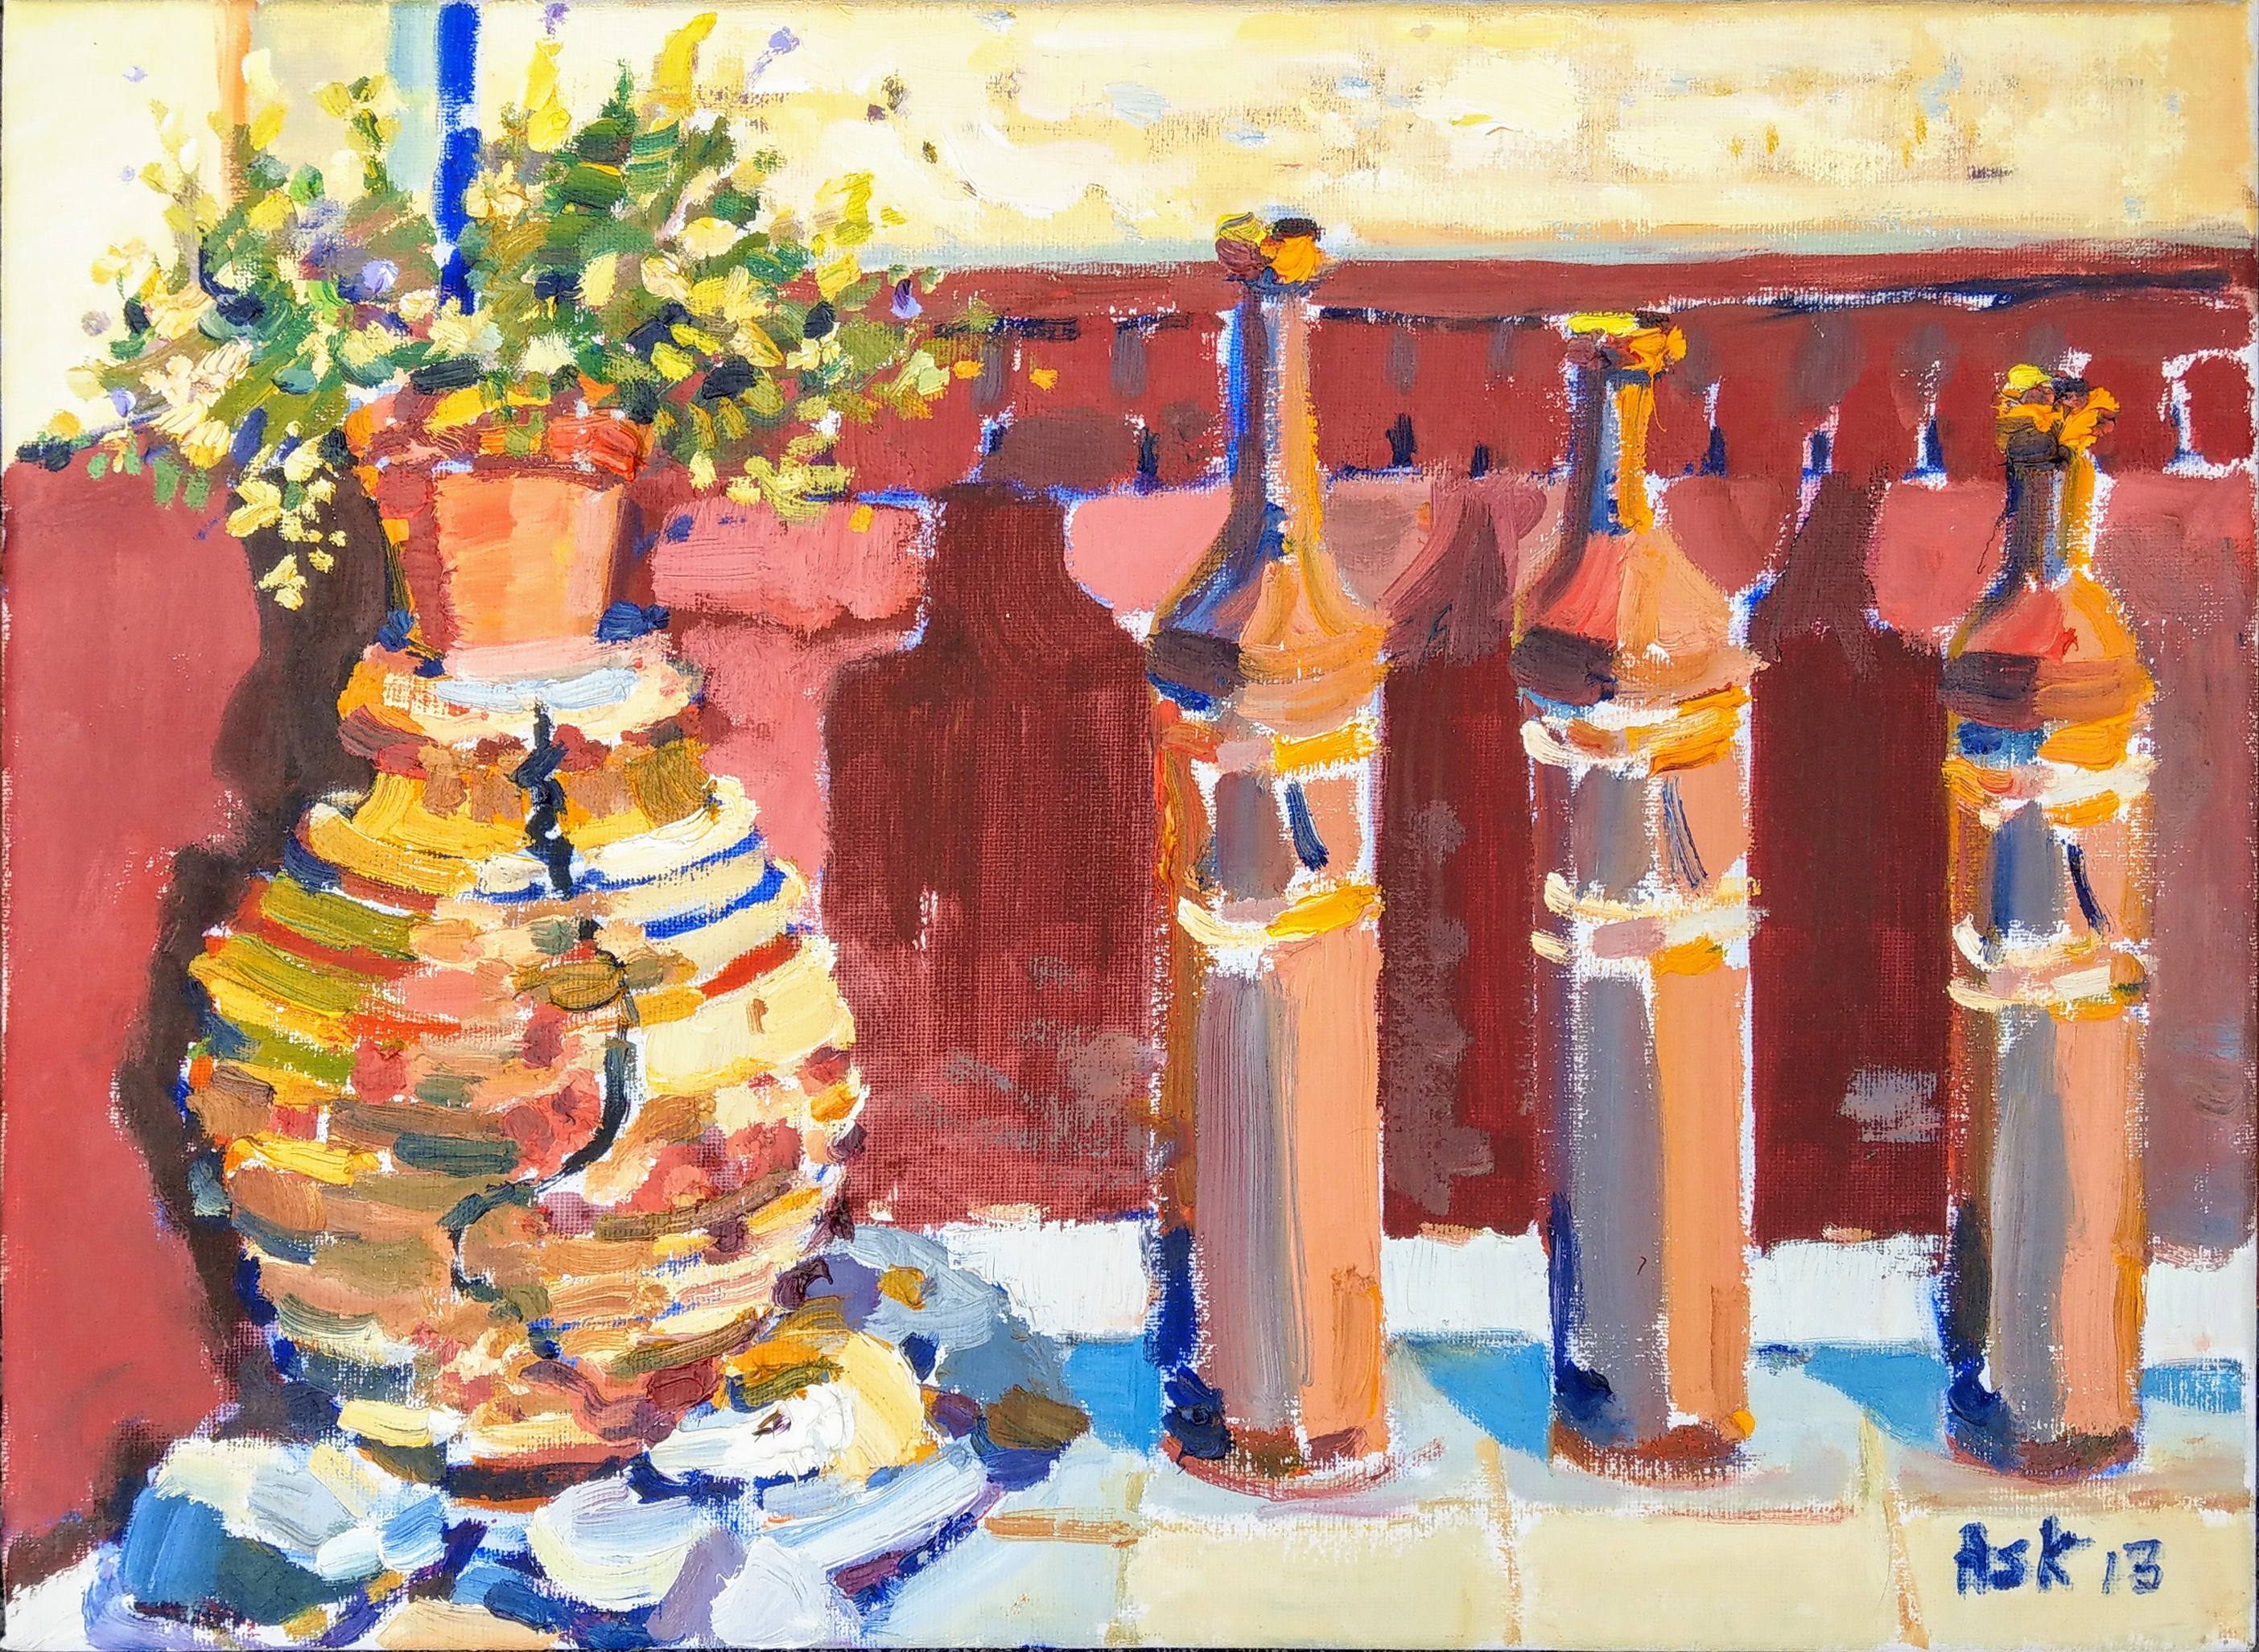 Greek Pottery on Elli's  Balcony Πήλινα στο Μπαλκόνι της Έλλης  Oil on Canvass 400 x 300 mm by Elaine Ask 2013